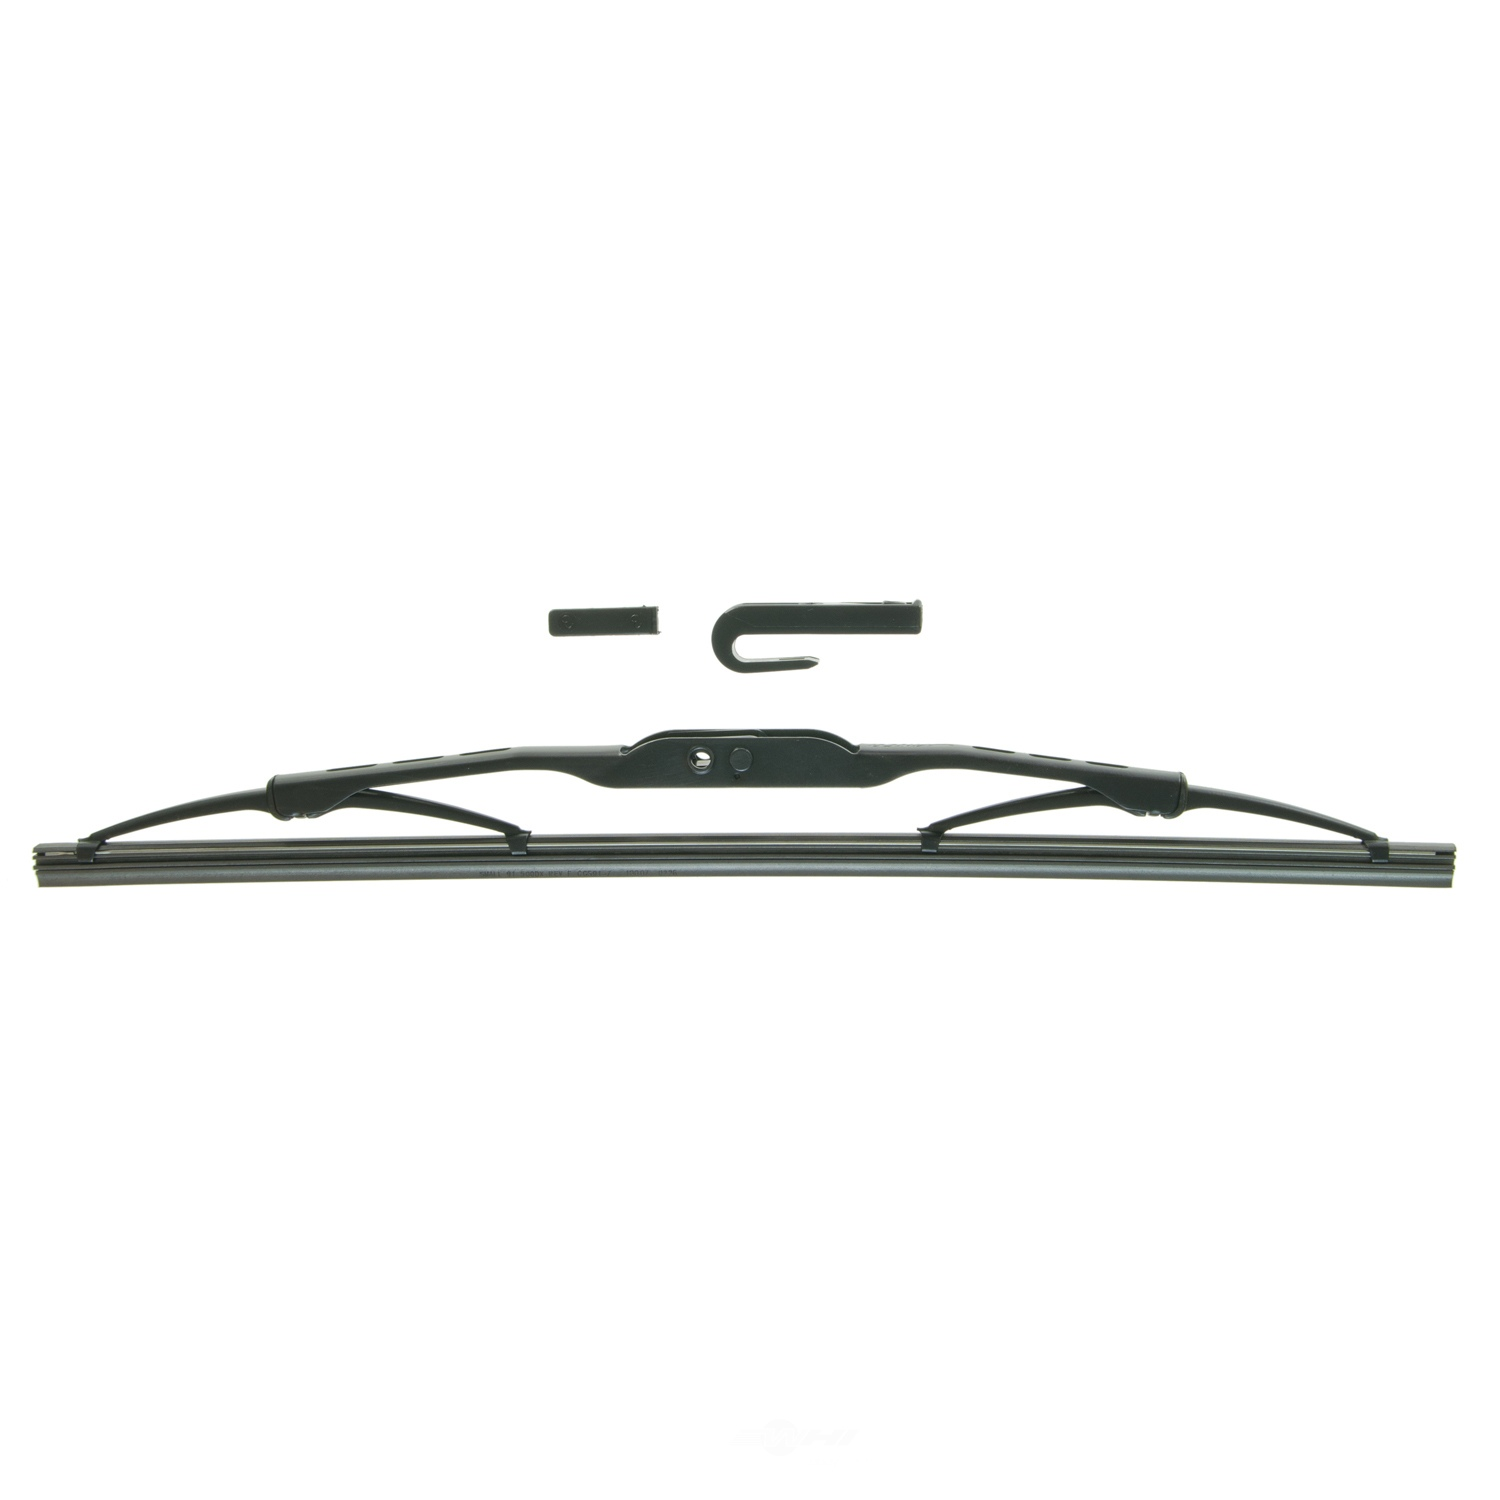 ANCO WIPER PRODUCTS - 31-Series Wiper Blade - ANC 31-14